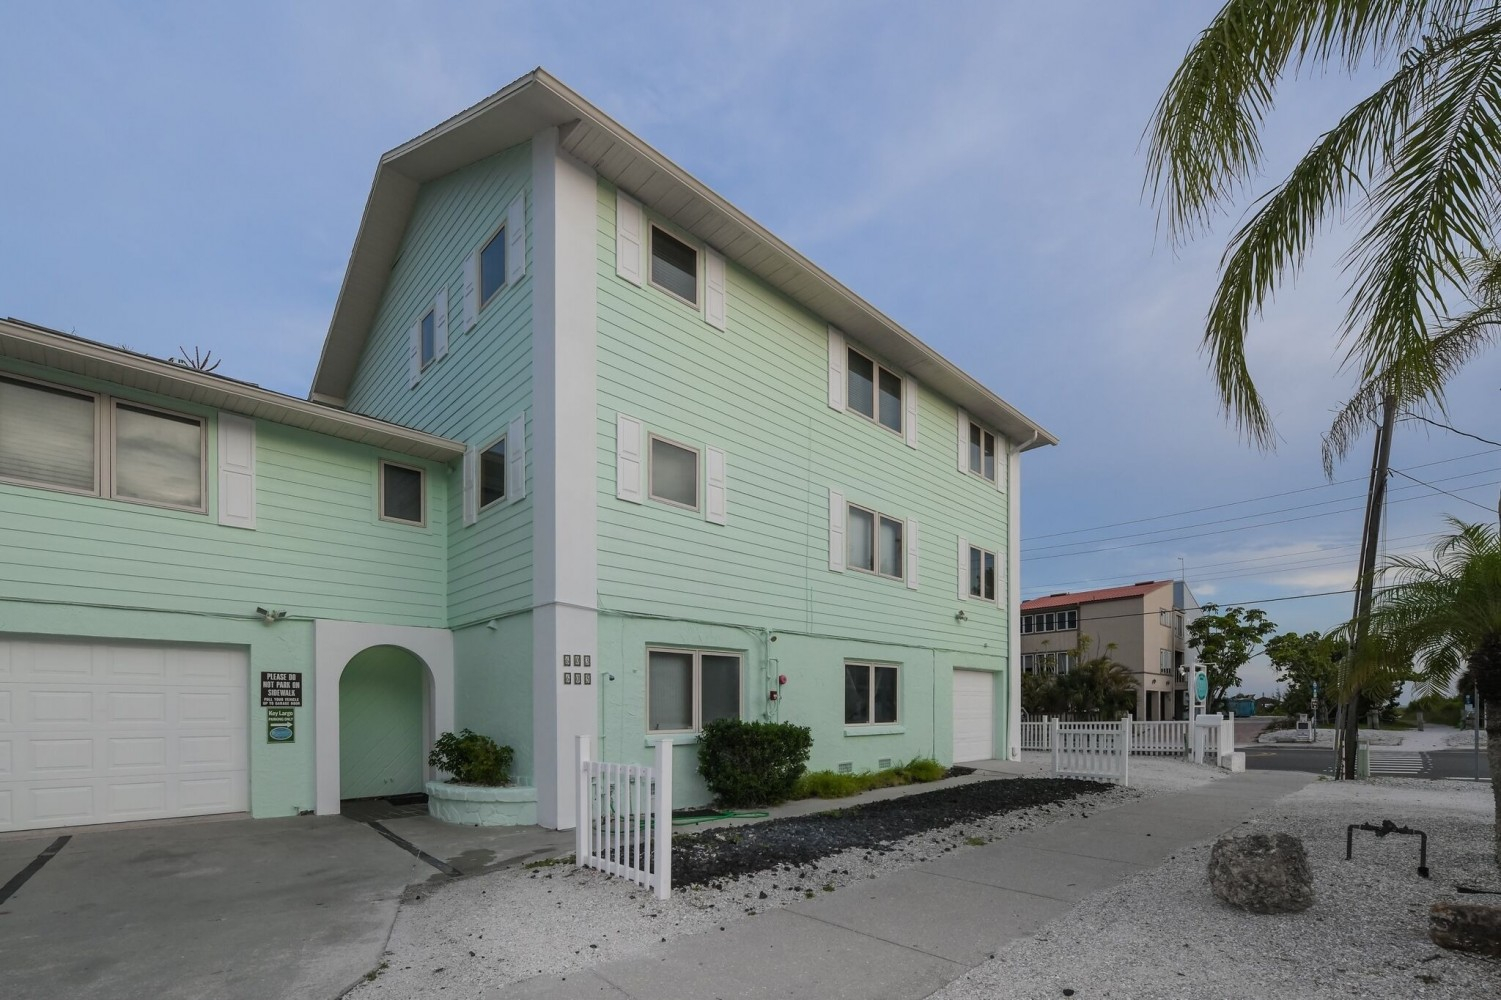 Islamorada - Siesta Key Vacation Rentals